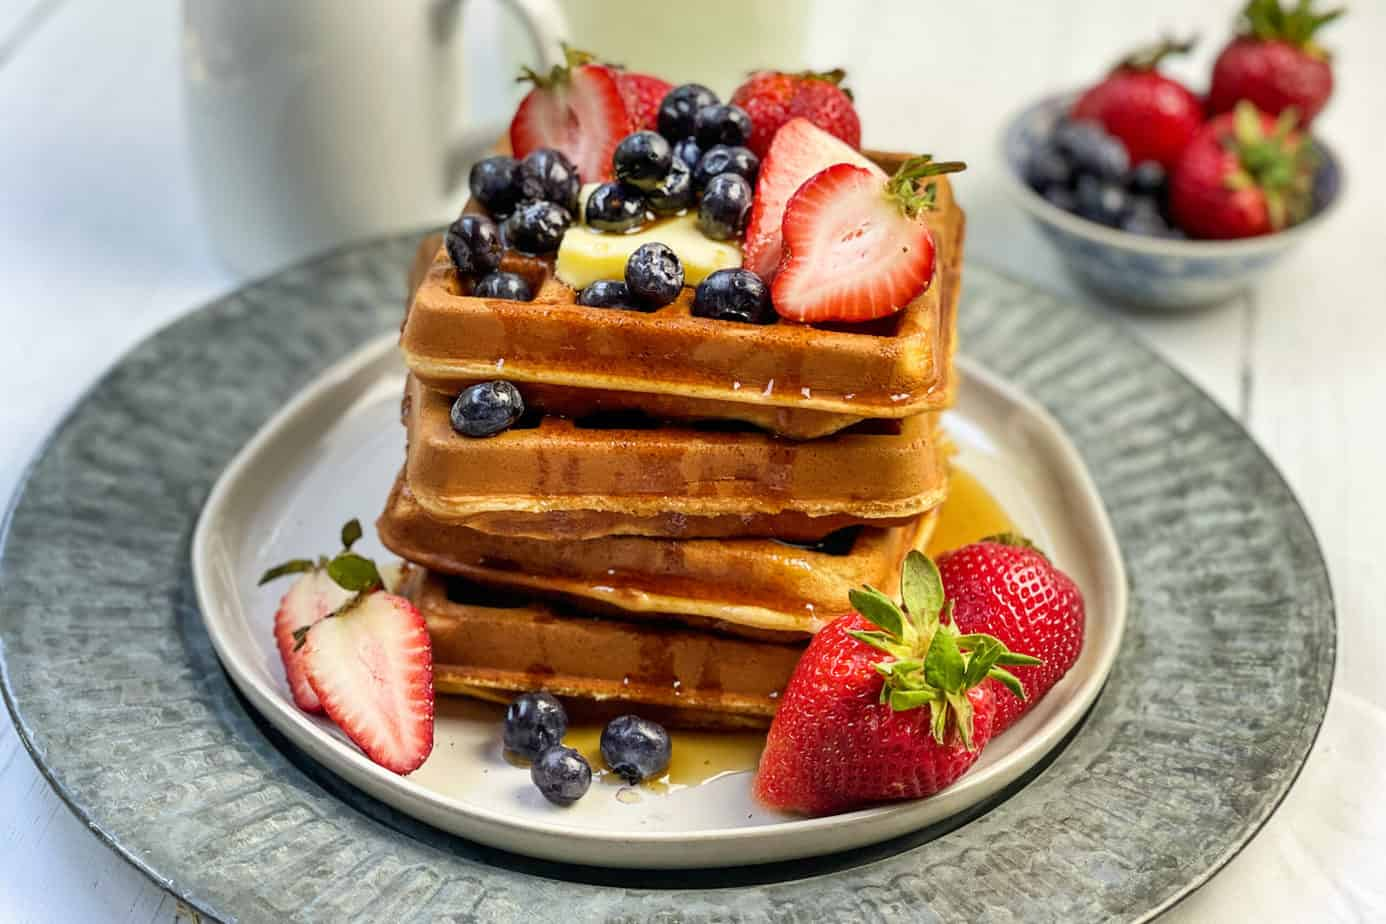 Closeup of Whole Wheat Waffles Stacked with Strawberries and Blueberries